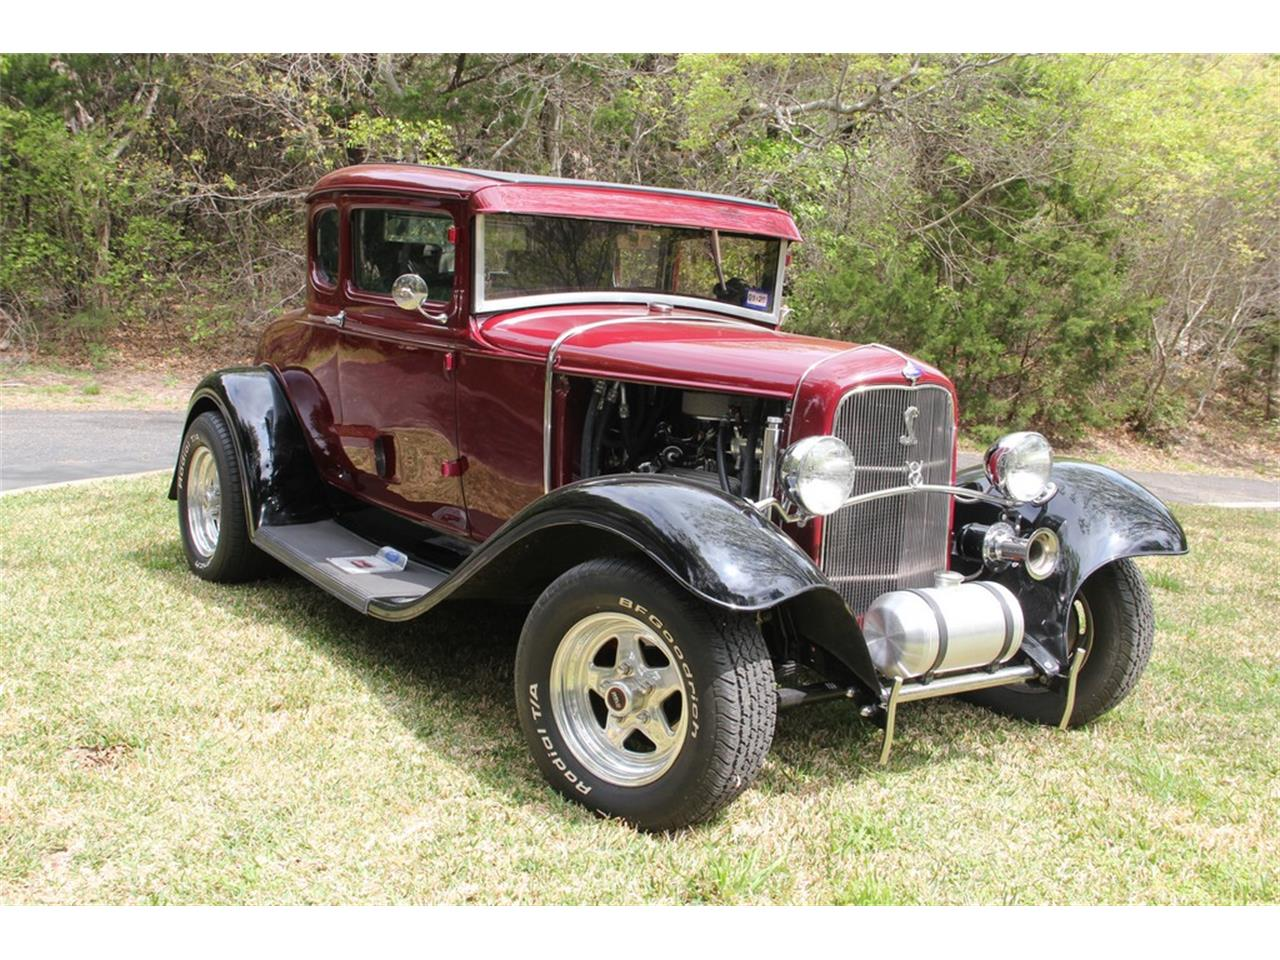 Large Picture of 1932 Ford Coupe located in Cedar Hill Texas - $39,500.00 Offered by a Private Seller - PRVF